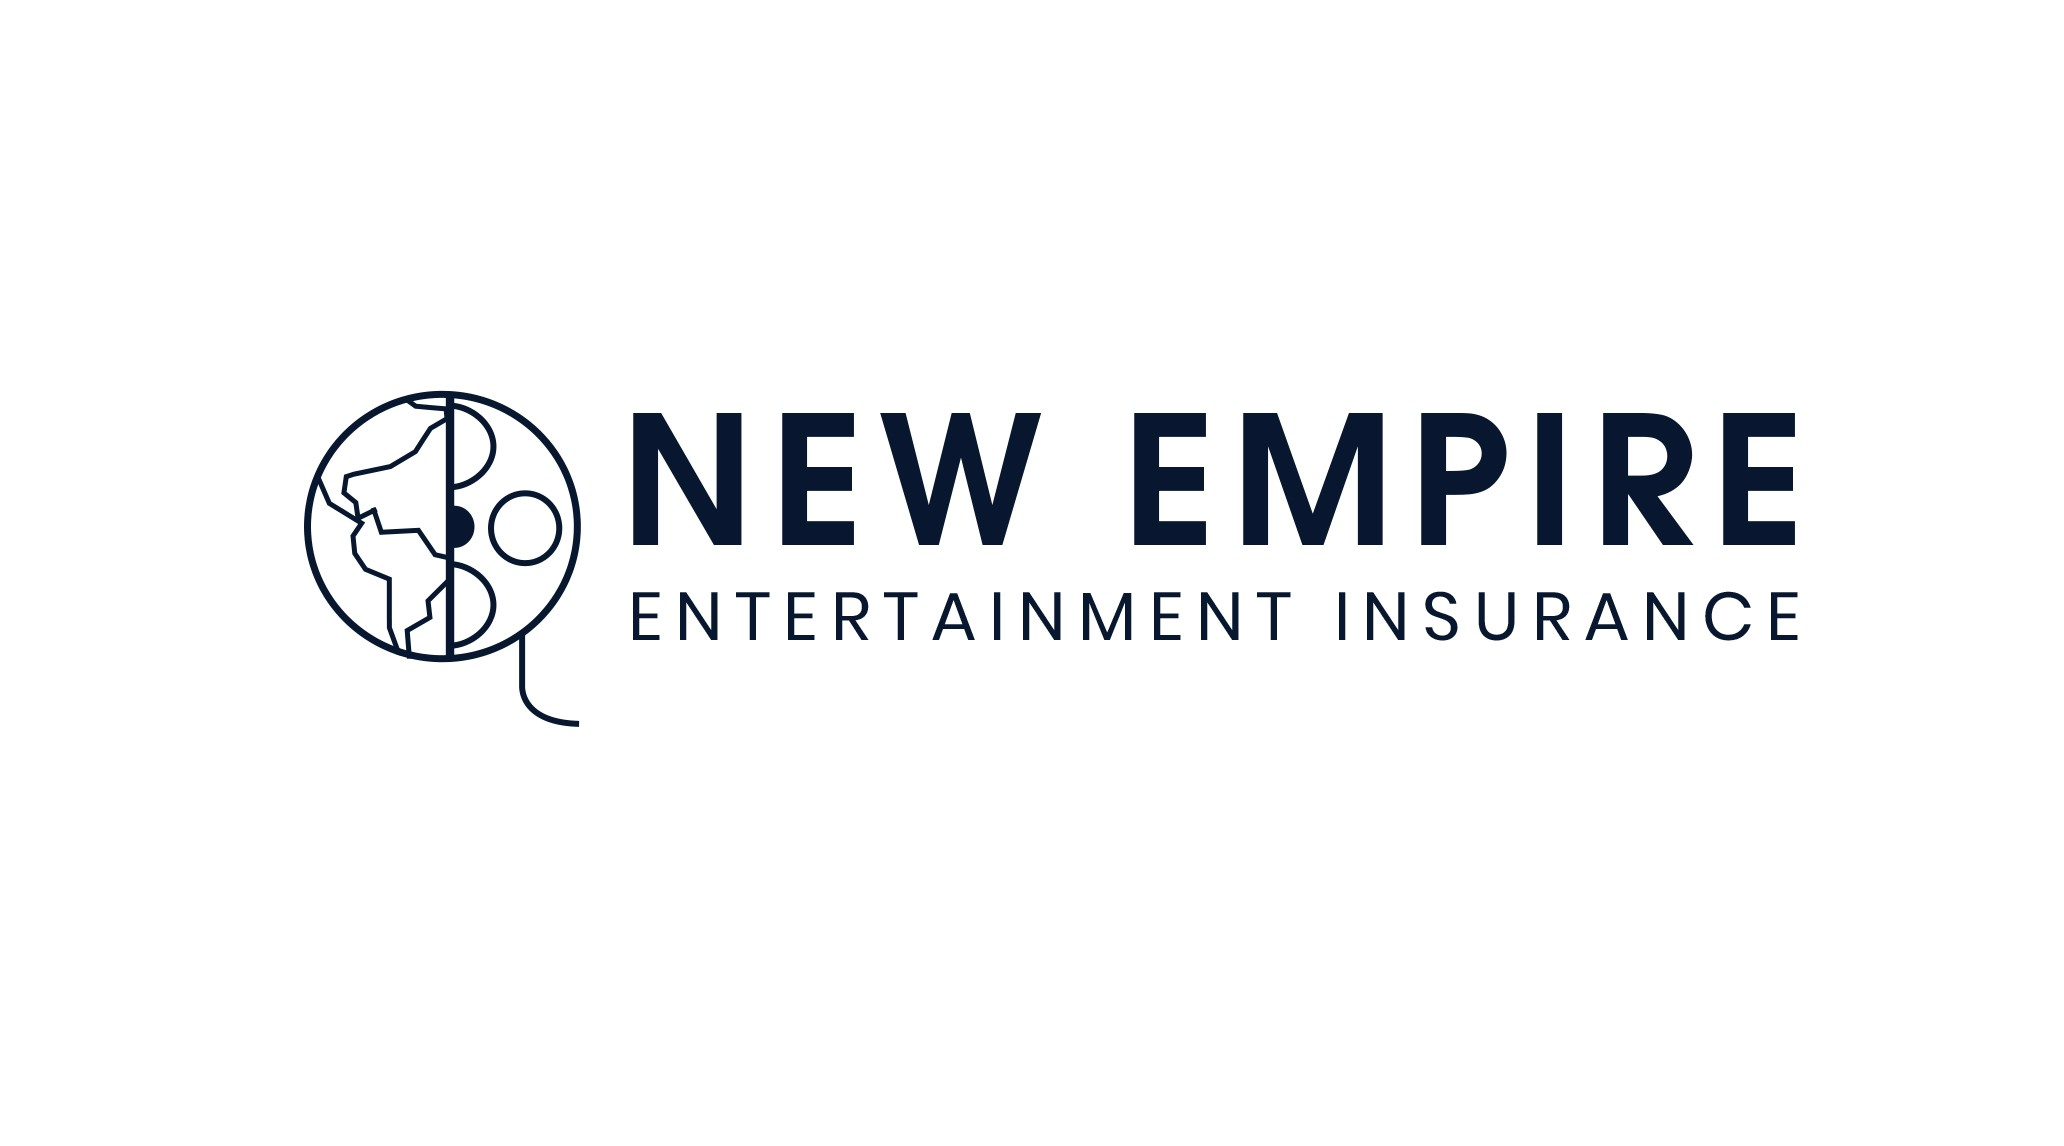 New Empire Entertainment Insurance Services Linkedin